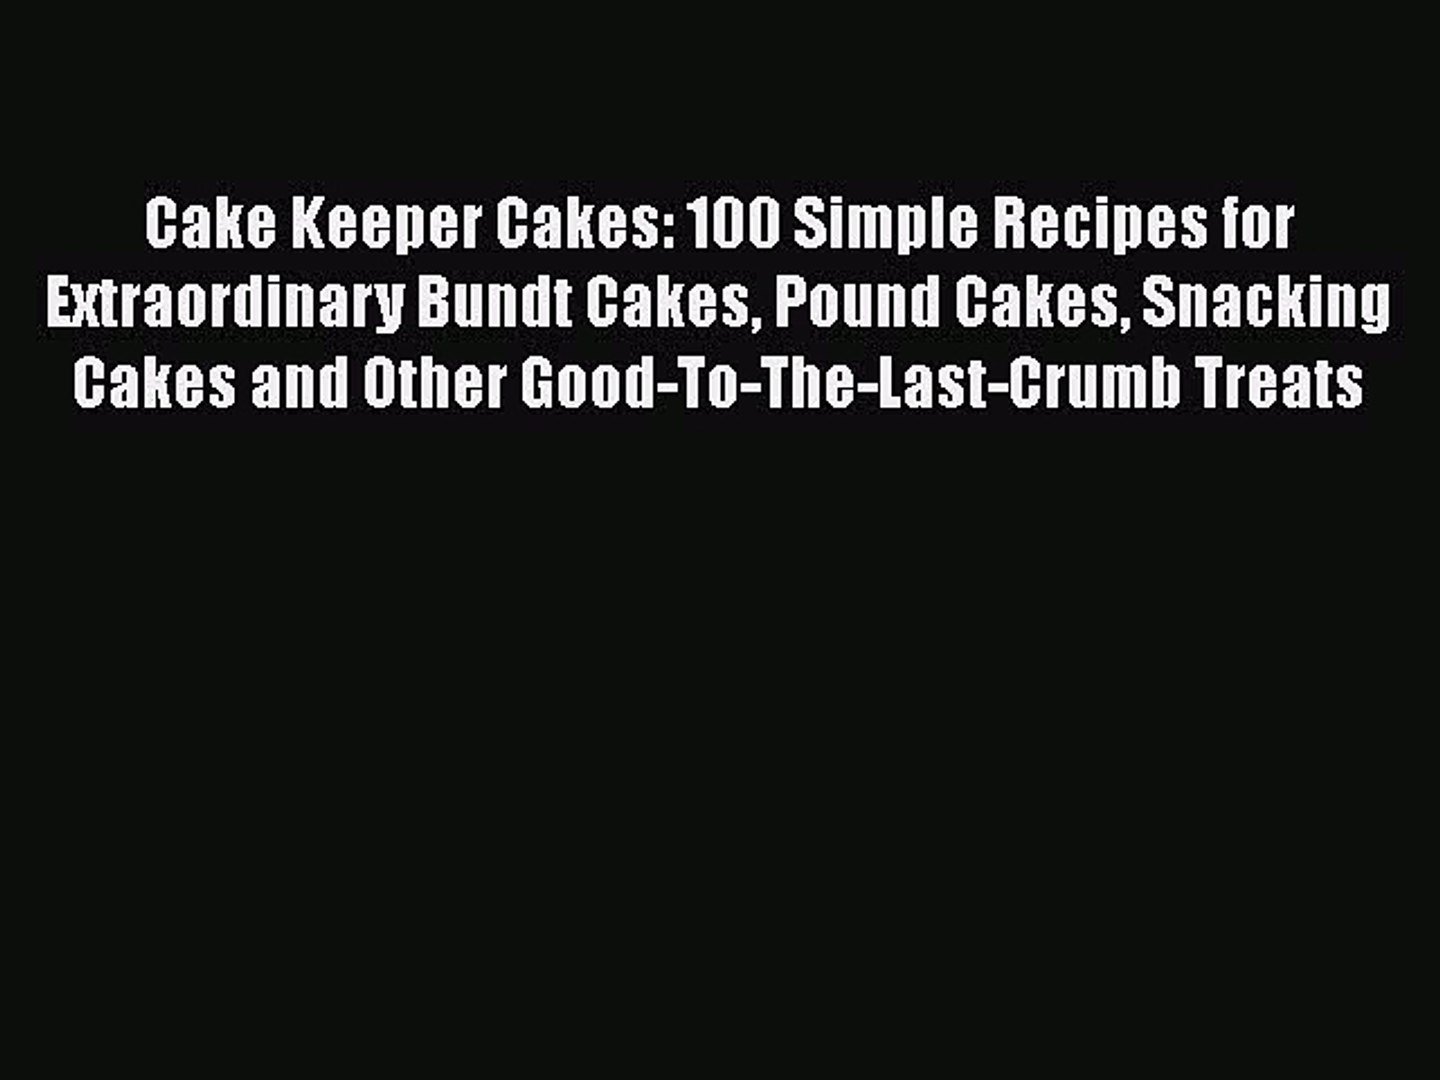 [PDF] Cake Keeper Cakes: 100 Simple Recipes for Extraordinary Bundt Cakes Pound Cakes Snacking